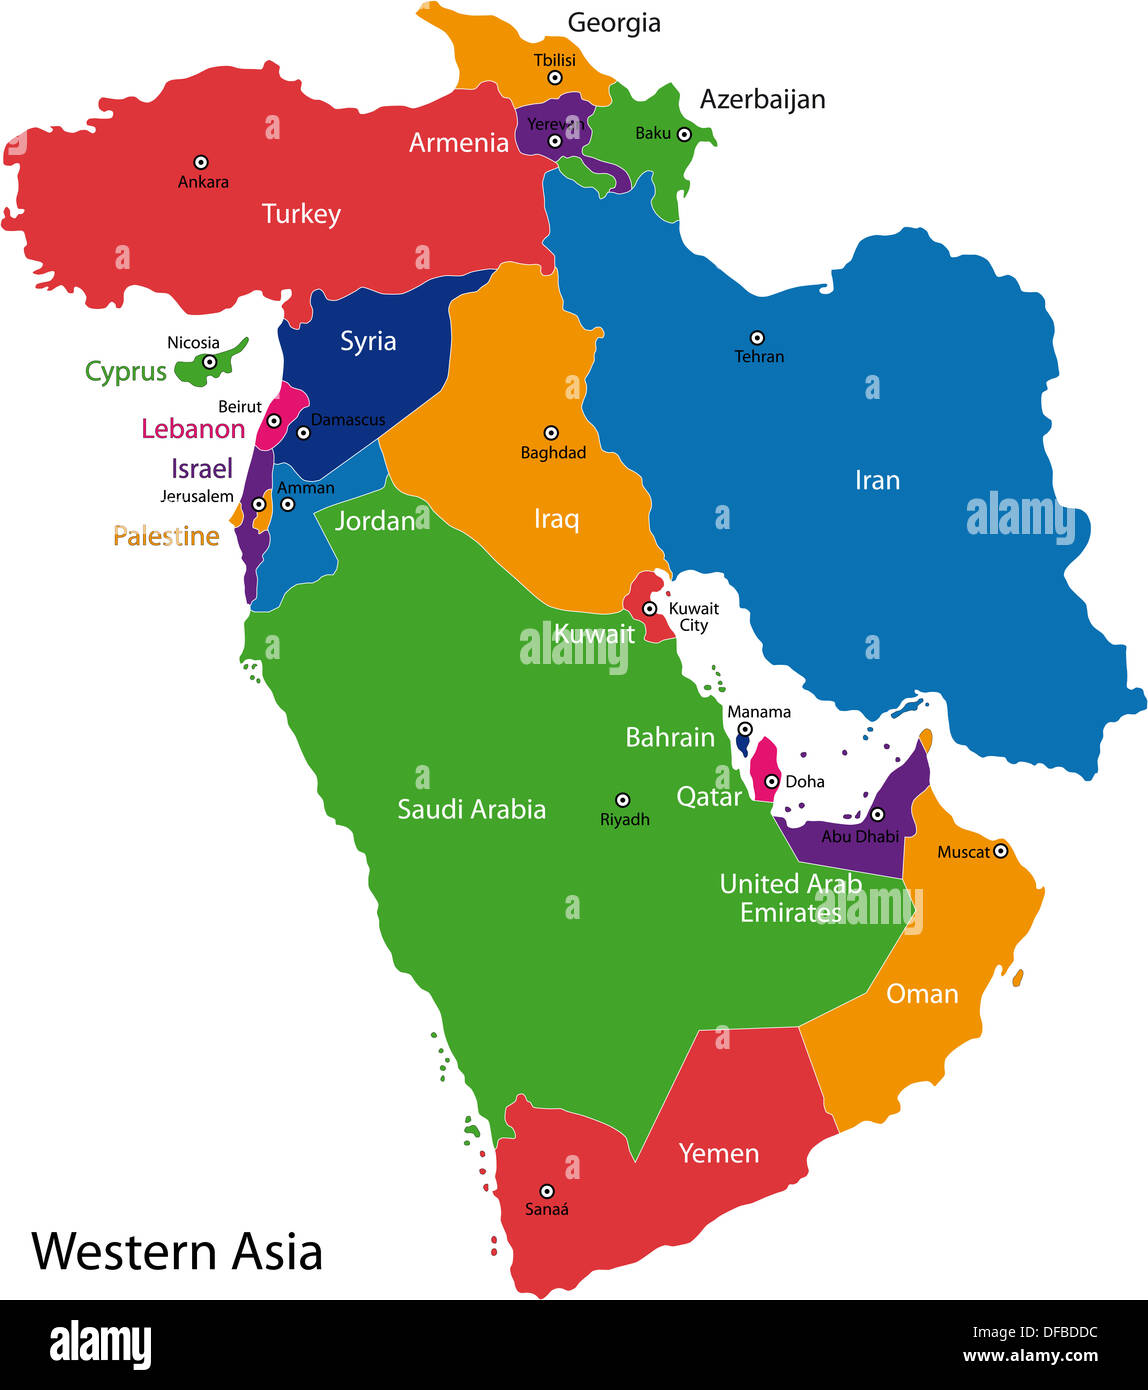 Western Asia map Stock Photo: 61102984 - Alamy